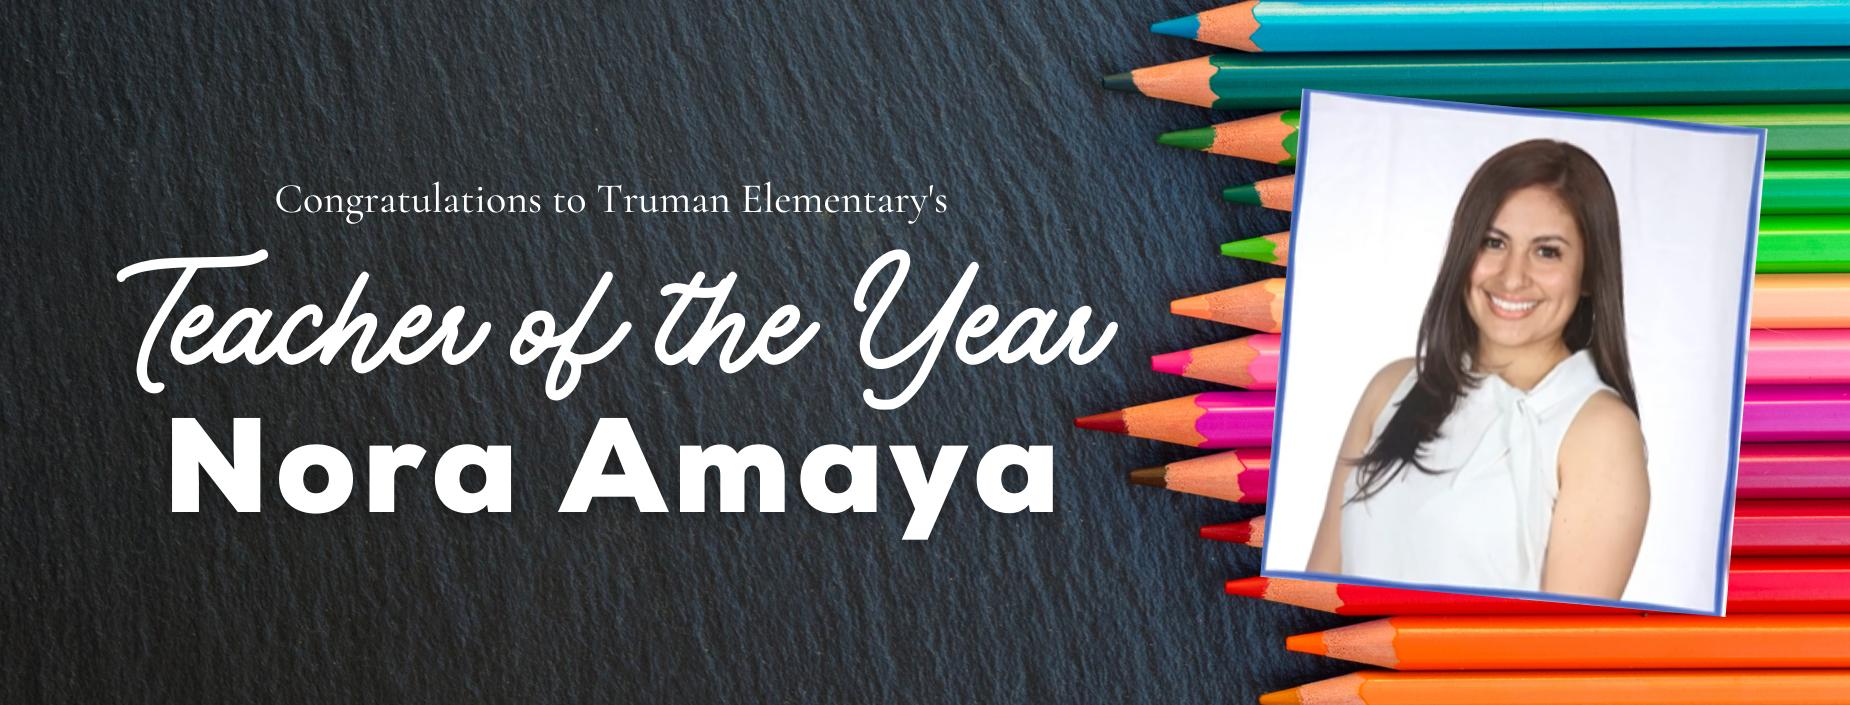 Congratulations to Truman Elementary's Techer of the Year Nora Amaya